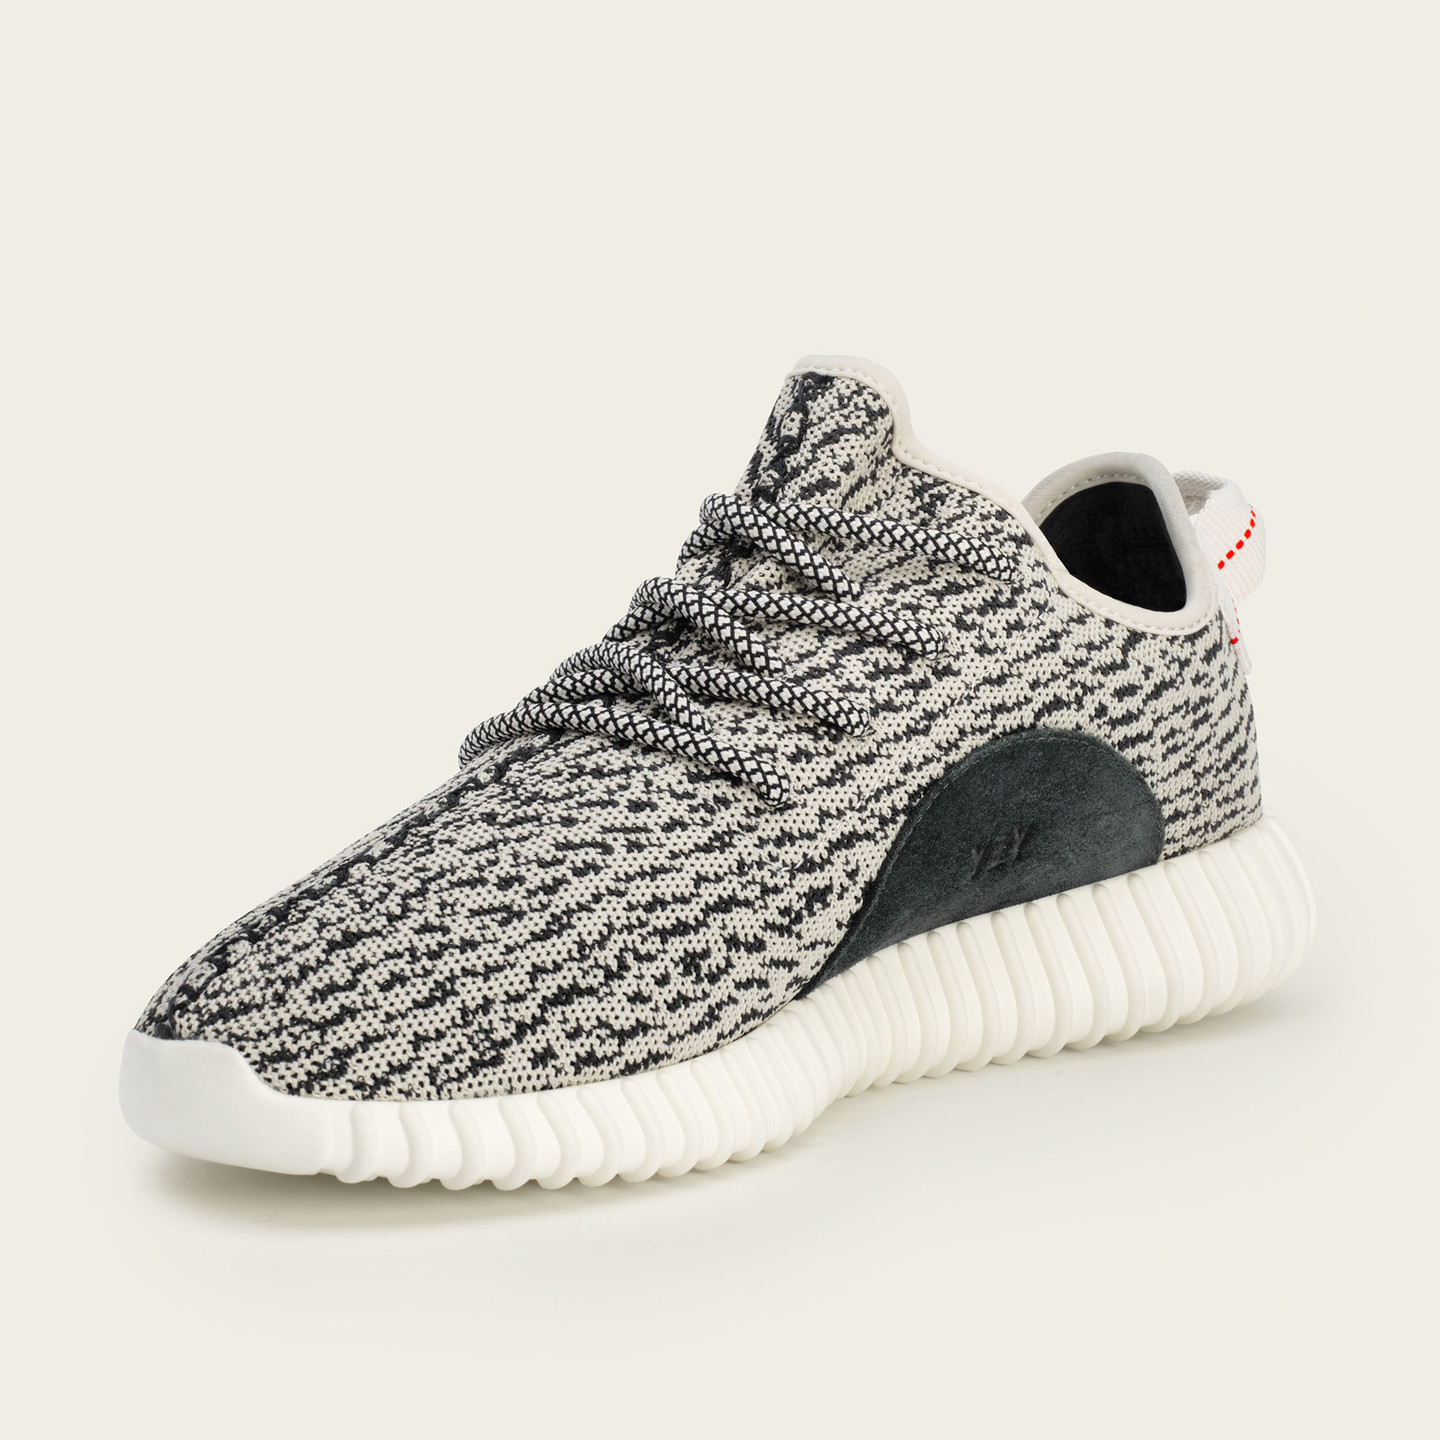 Adidas Yeezy 350 Boost  Turtle Grey / Blush Grape / Cream White AQ4832